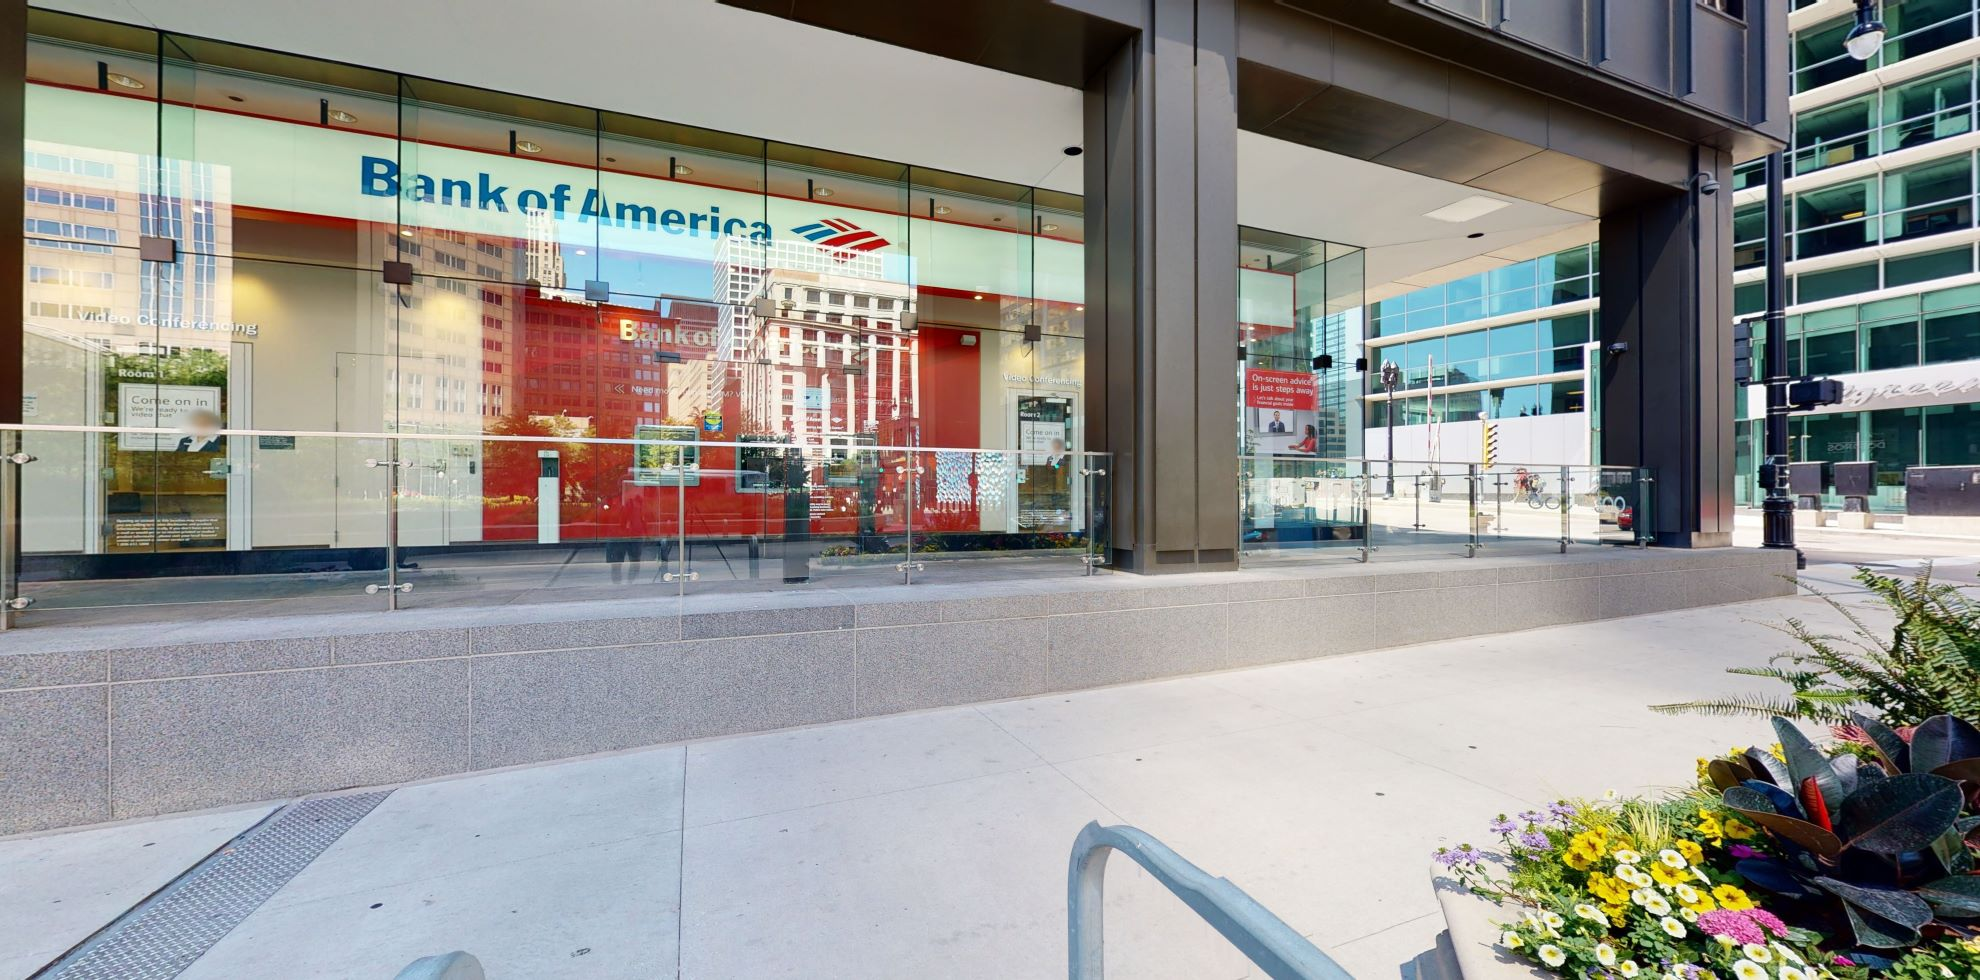 Bank of America Advanced Center with walk-up ATM | 300 S Wacker Dr, Chicago, IL 60606